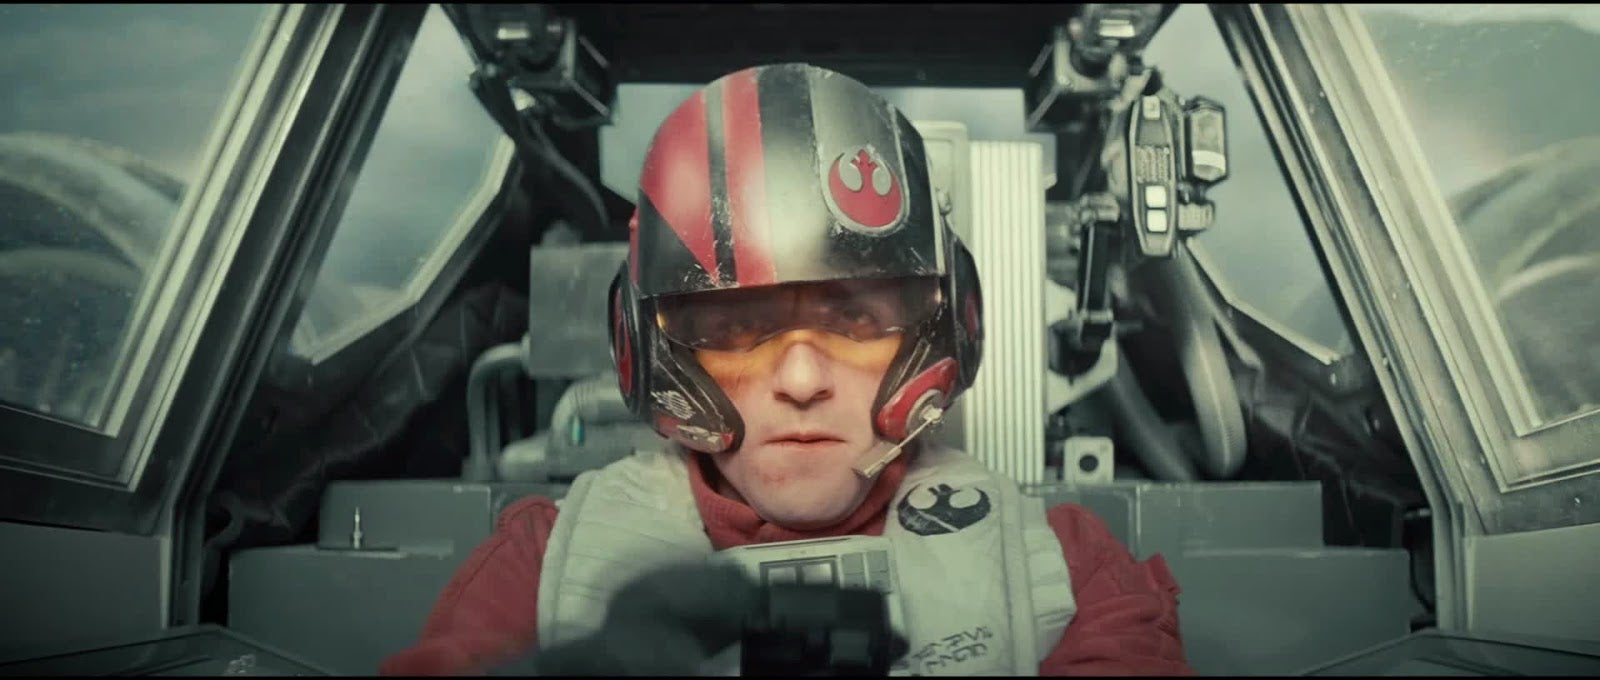 Star Wars The Force Awakens Picture (14)